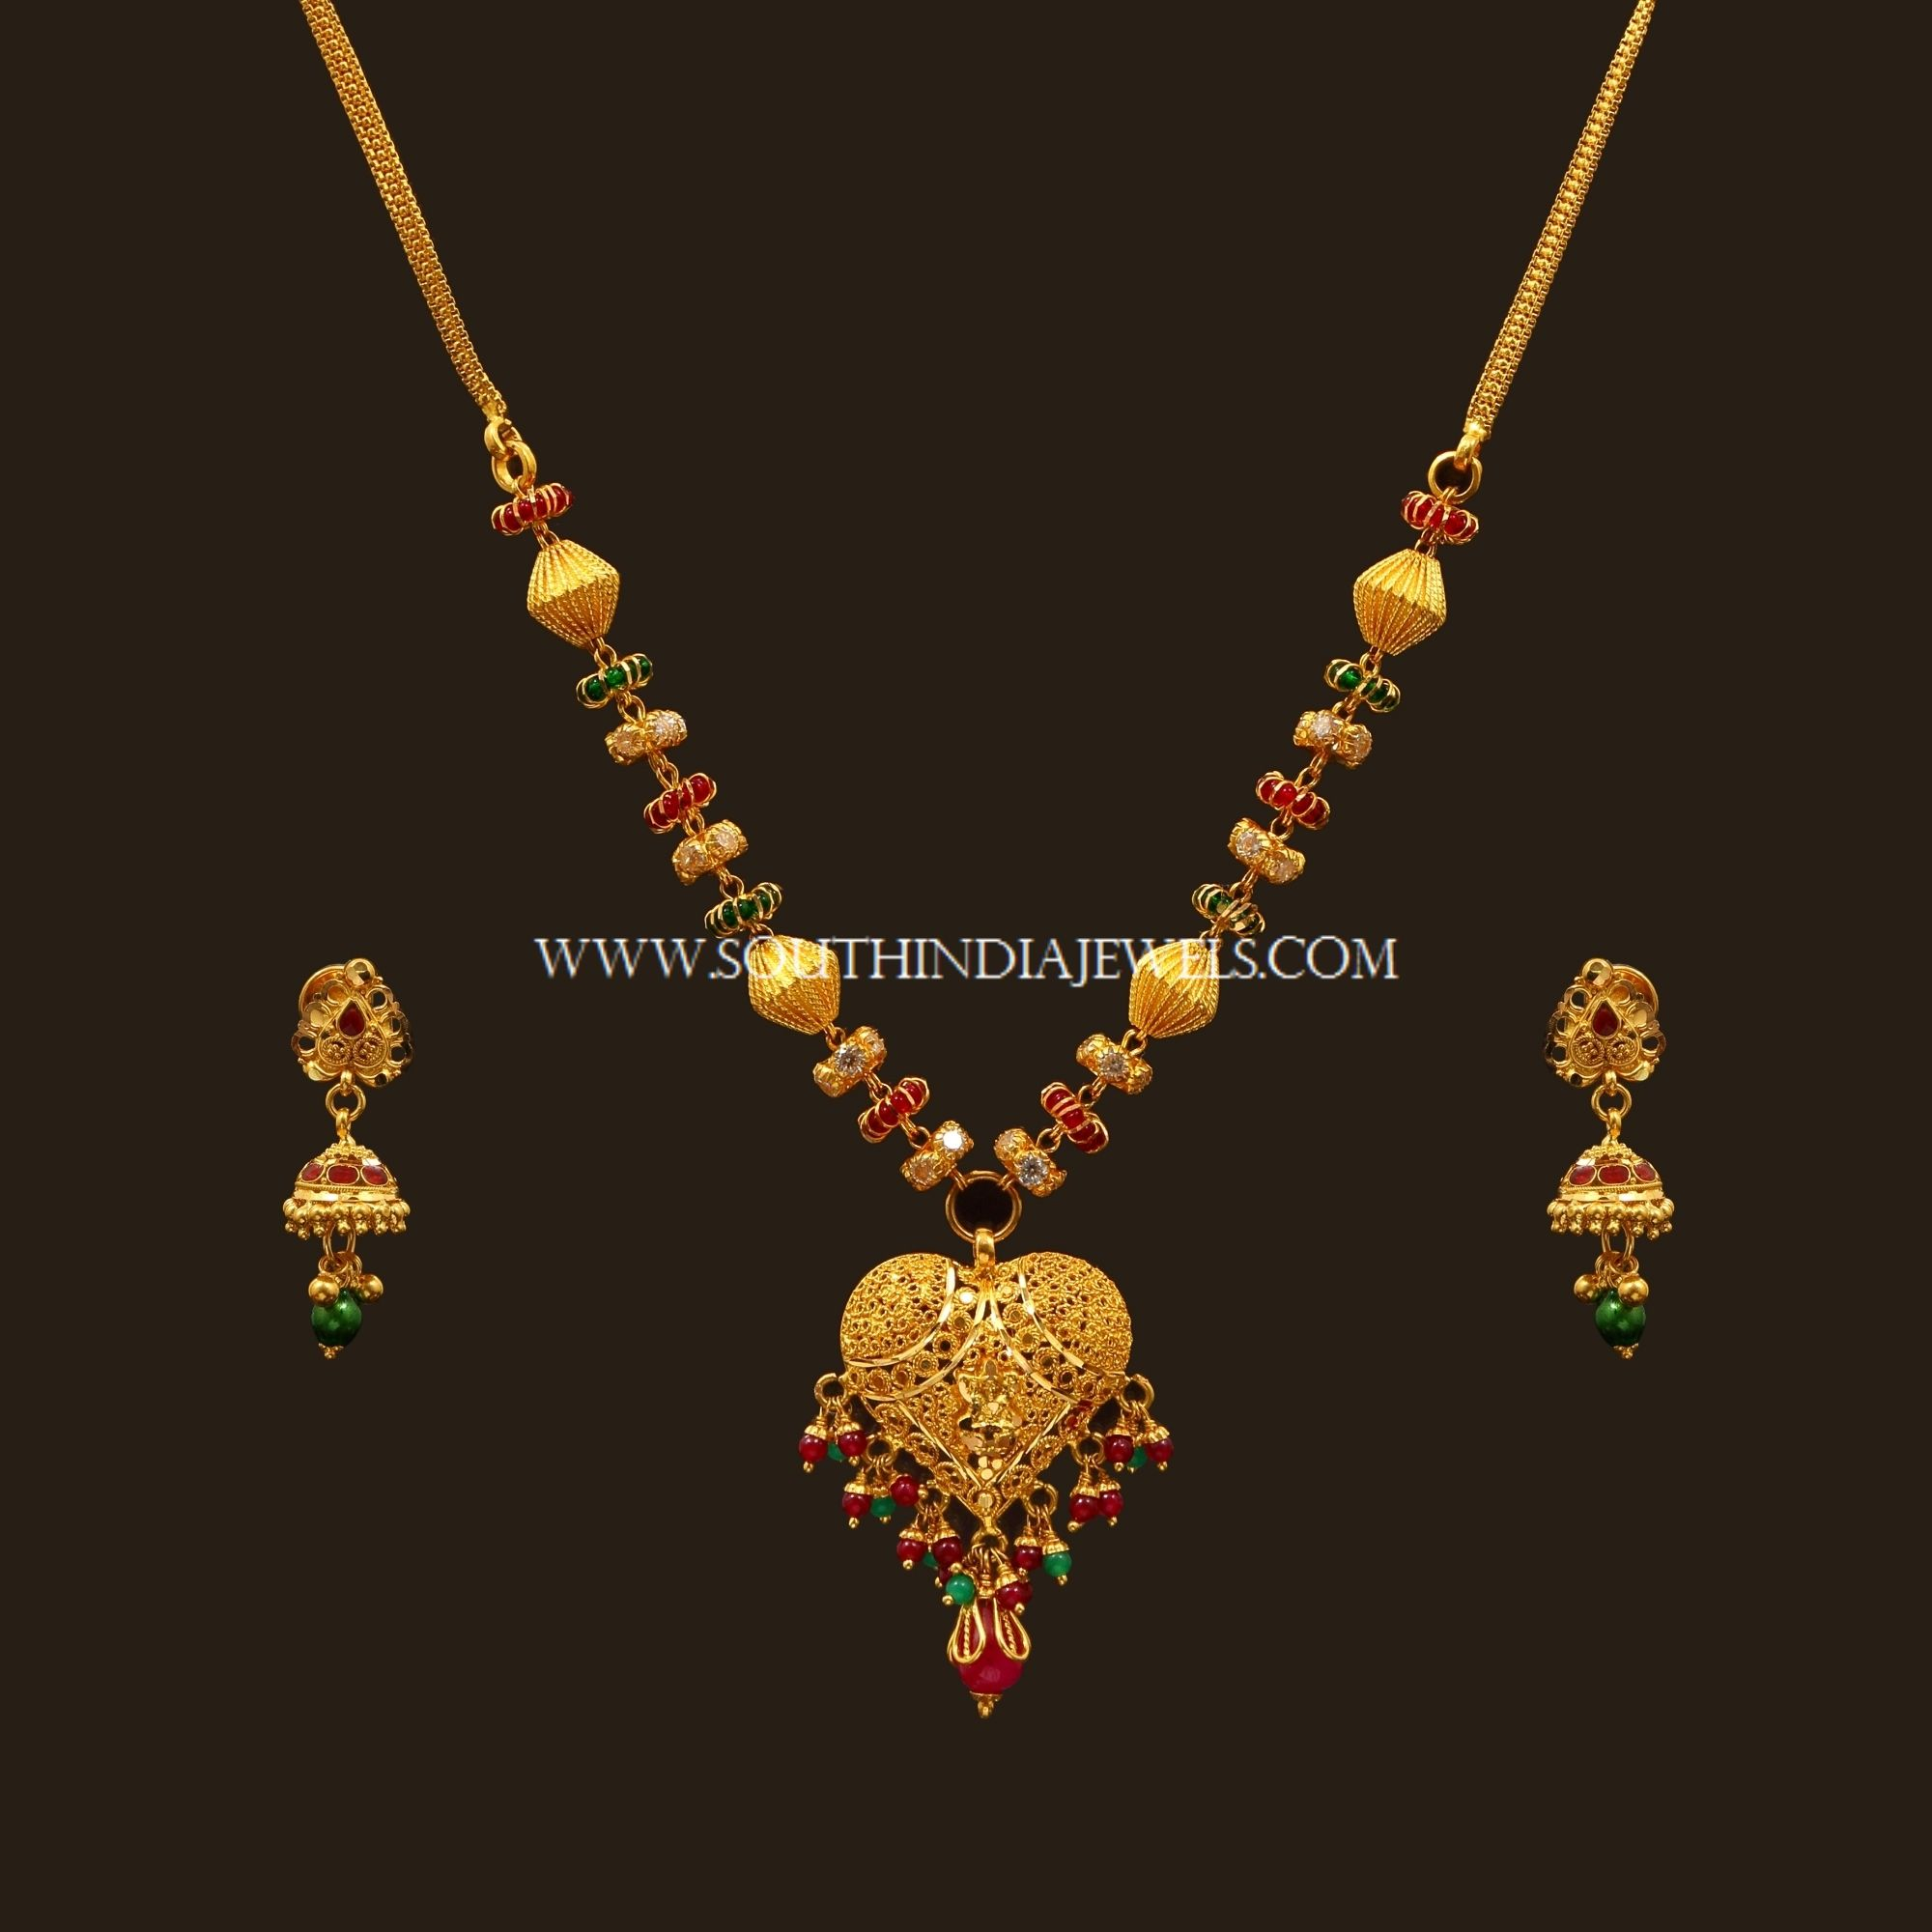 Latest gold necklace designs in grams pachi necklace latest jewellery - Latest Gold Necklace Set Designs With Price Latest Gold Necklace Set Models With Price